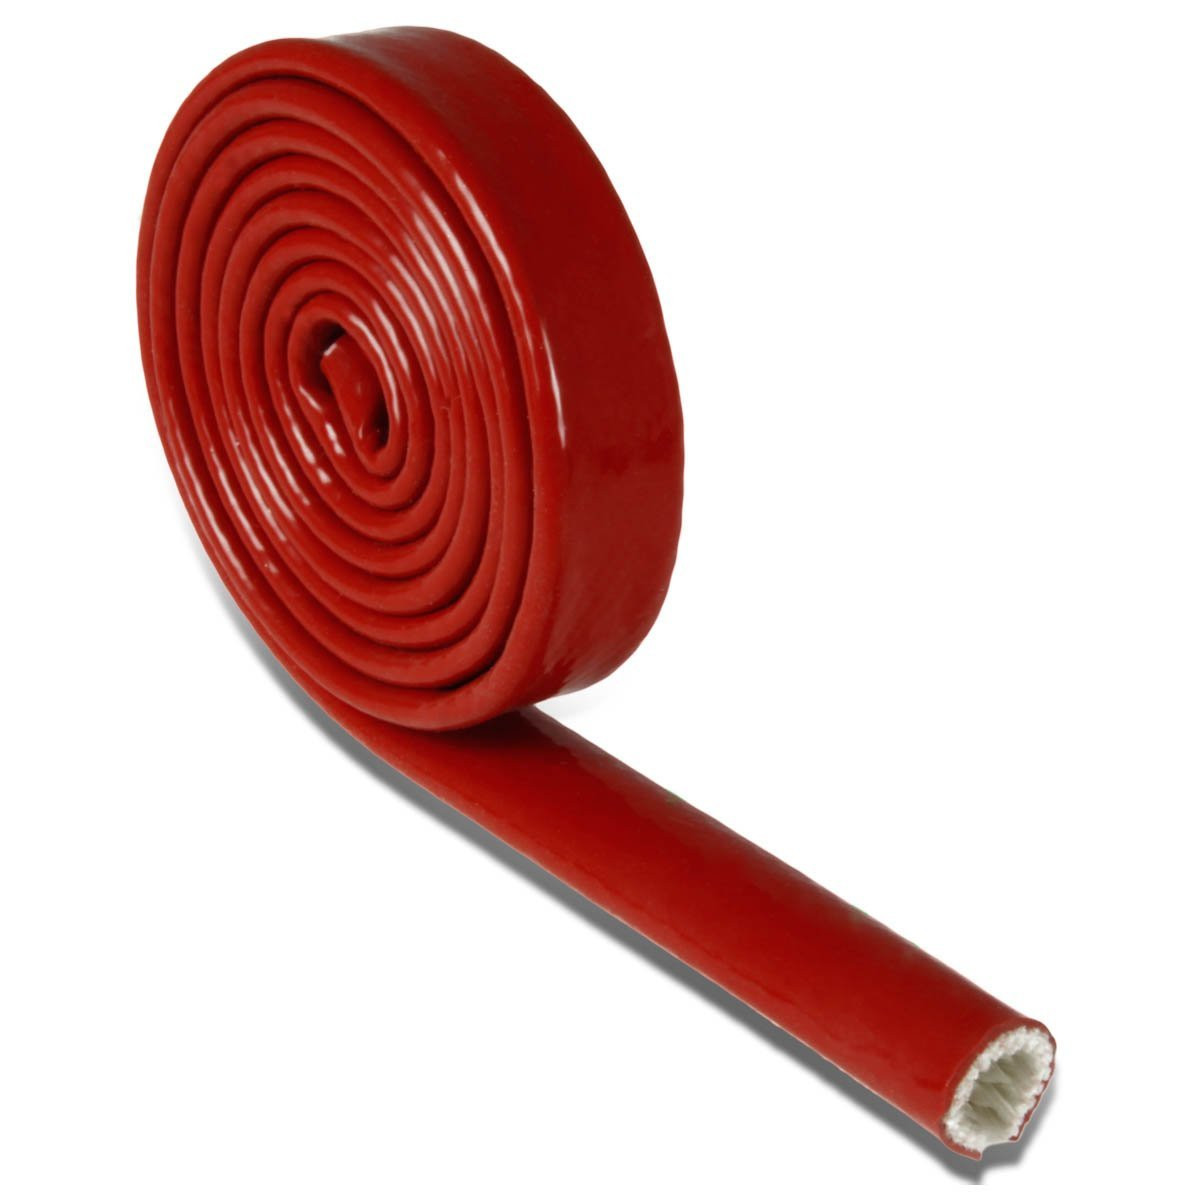 Pyrojacket Thermo Glass Fibre Firesleeve size 10.0mm - Red Oxide